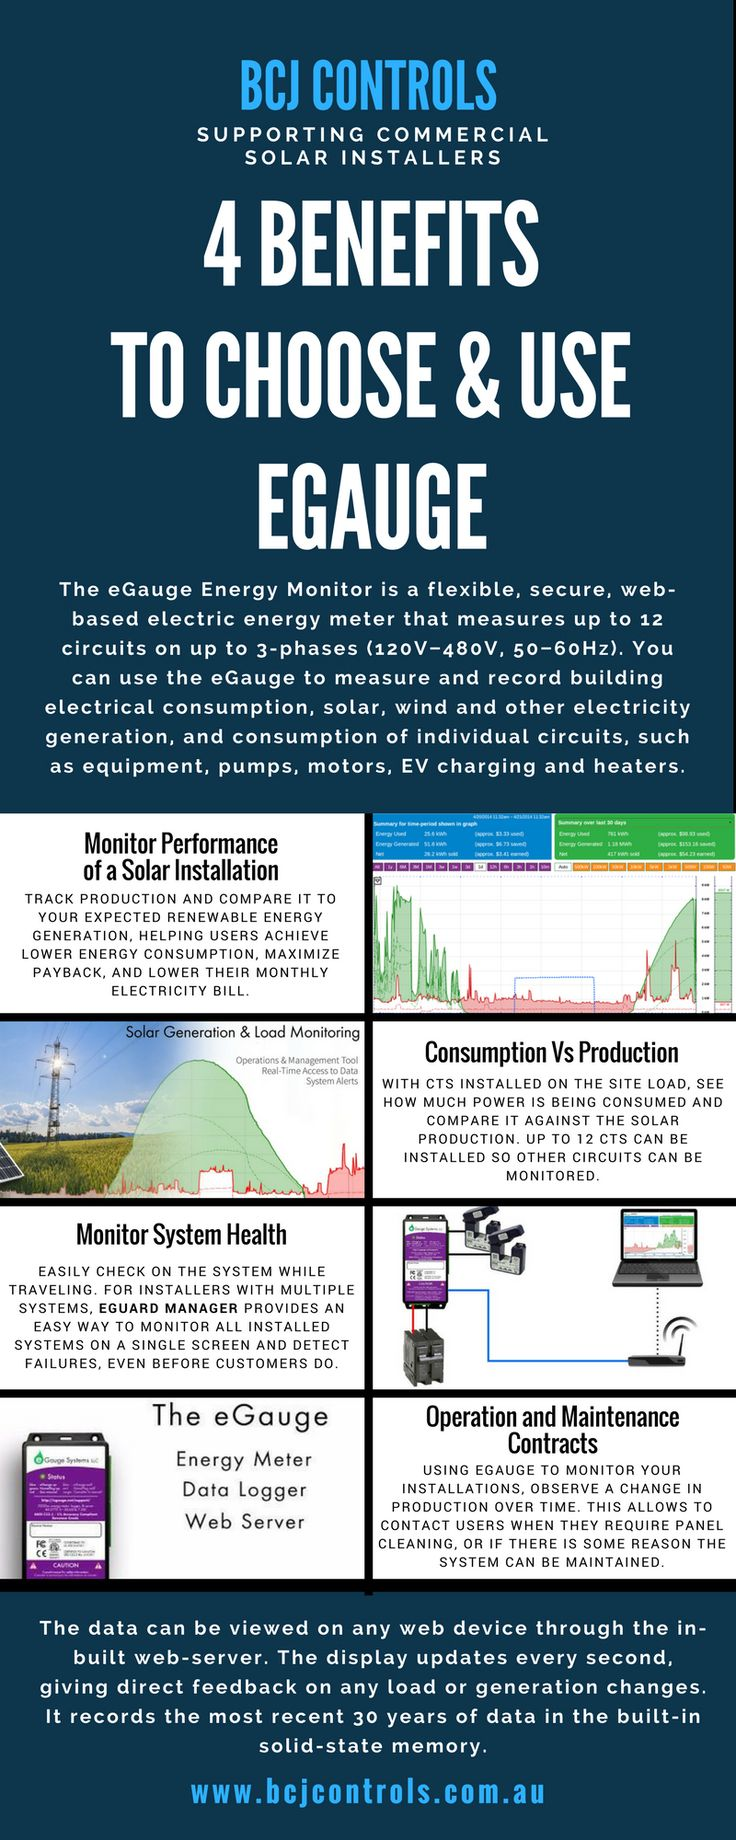 In choosing eGauge, there are some benefits that you can consider. Visit our website for more details: http://bcjcontrols.com.au/  #SolarProtectionRelay #ComapMainsPro #MainsPro #eGauge #eGaugeAustralia #BlueLog #BlueLogDataLogger #ComApIntelliPro #ComApInteliPro